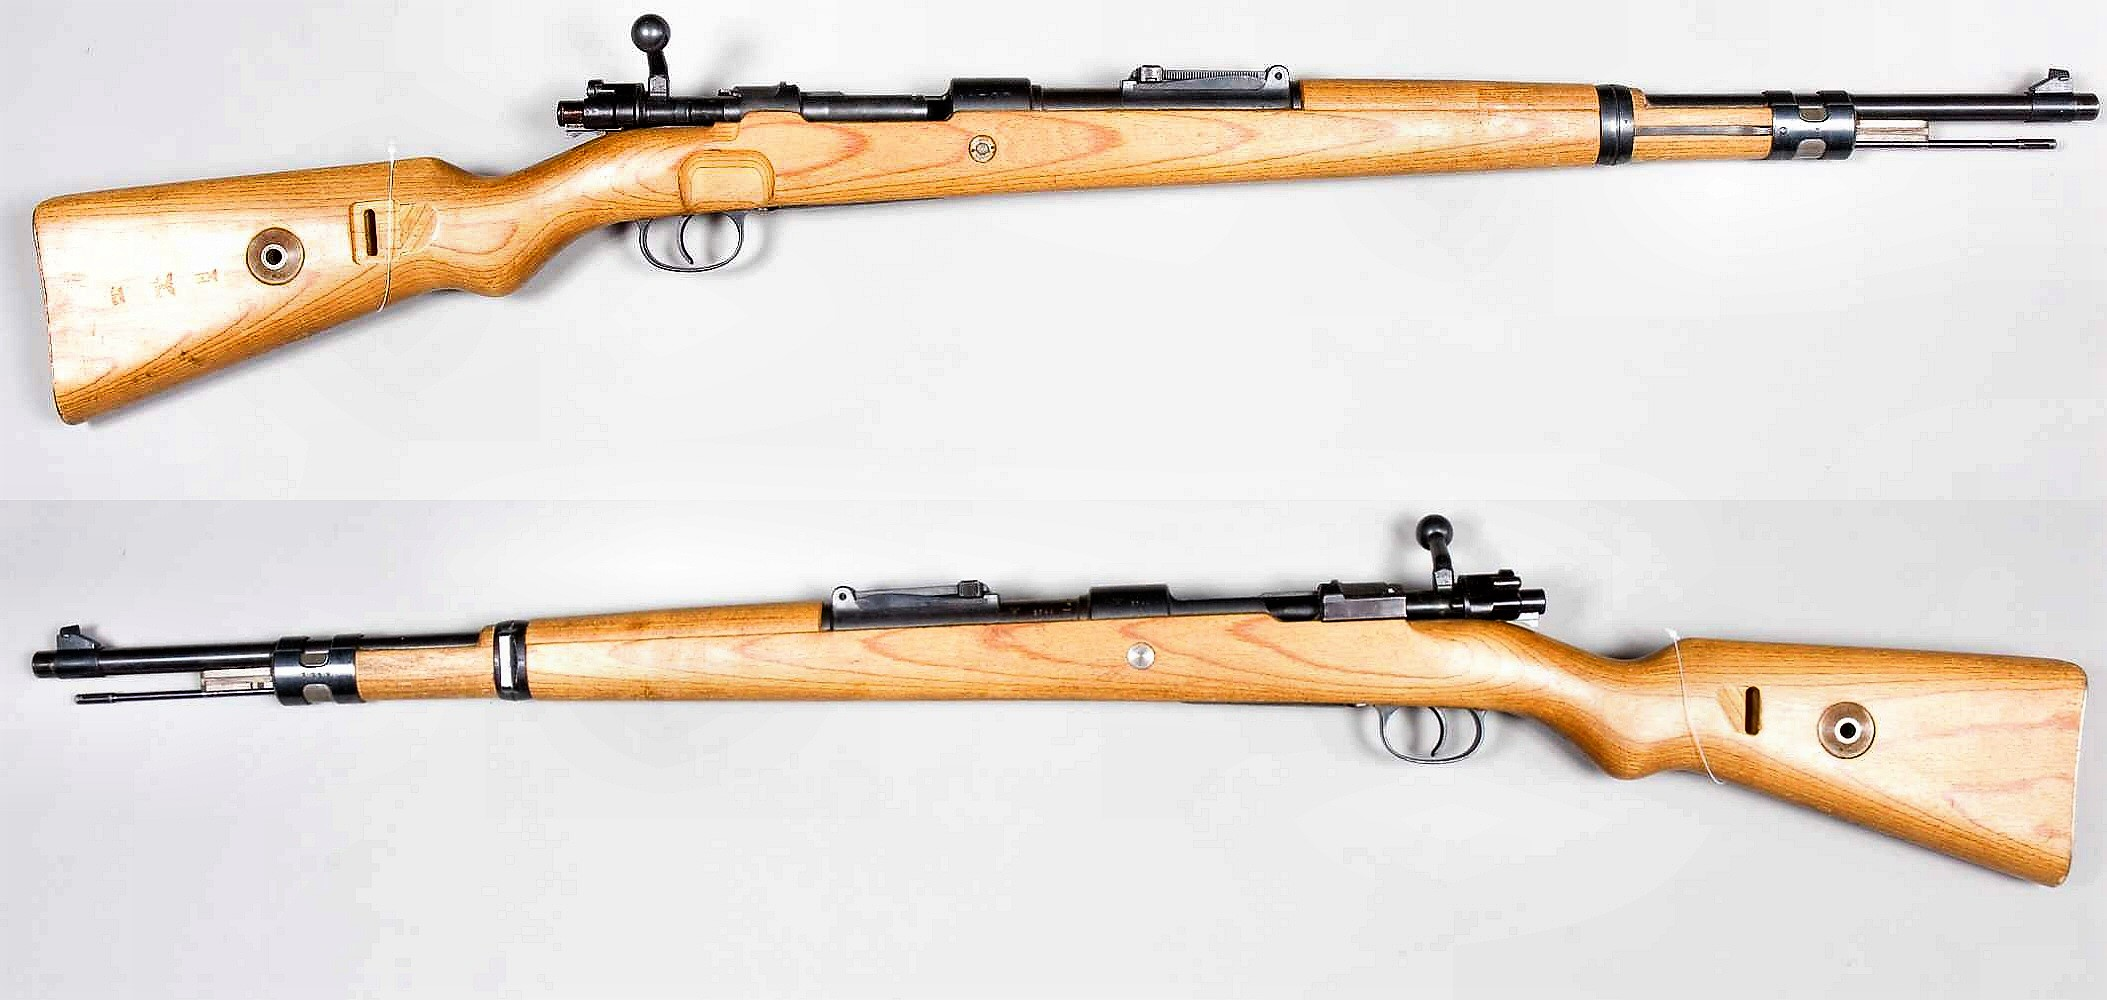 German Mauser 98k rifle